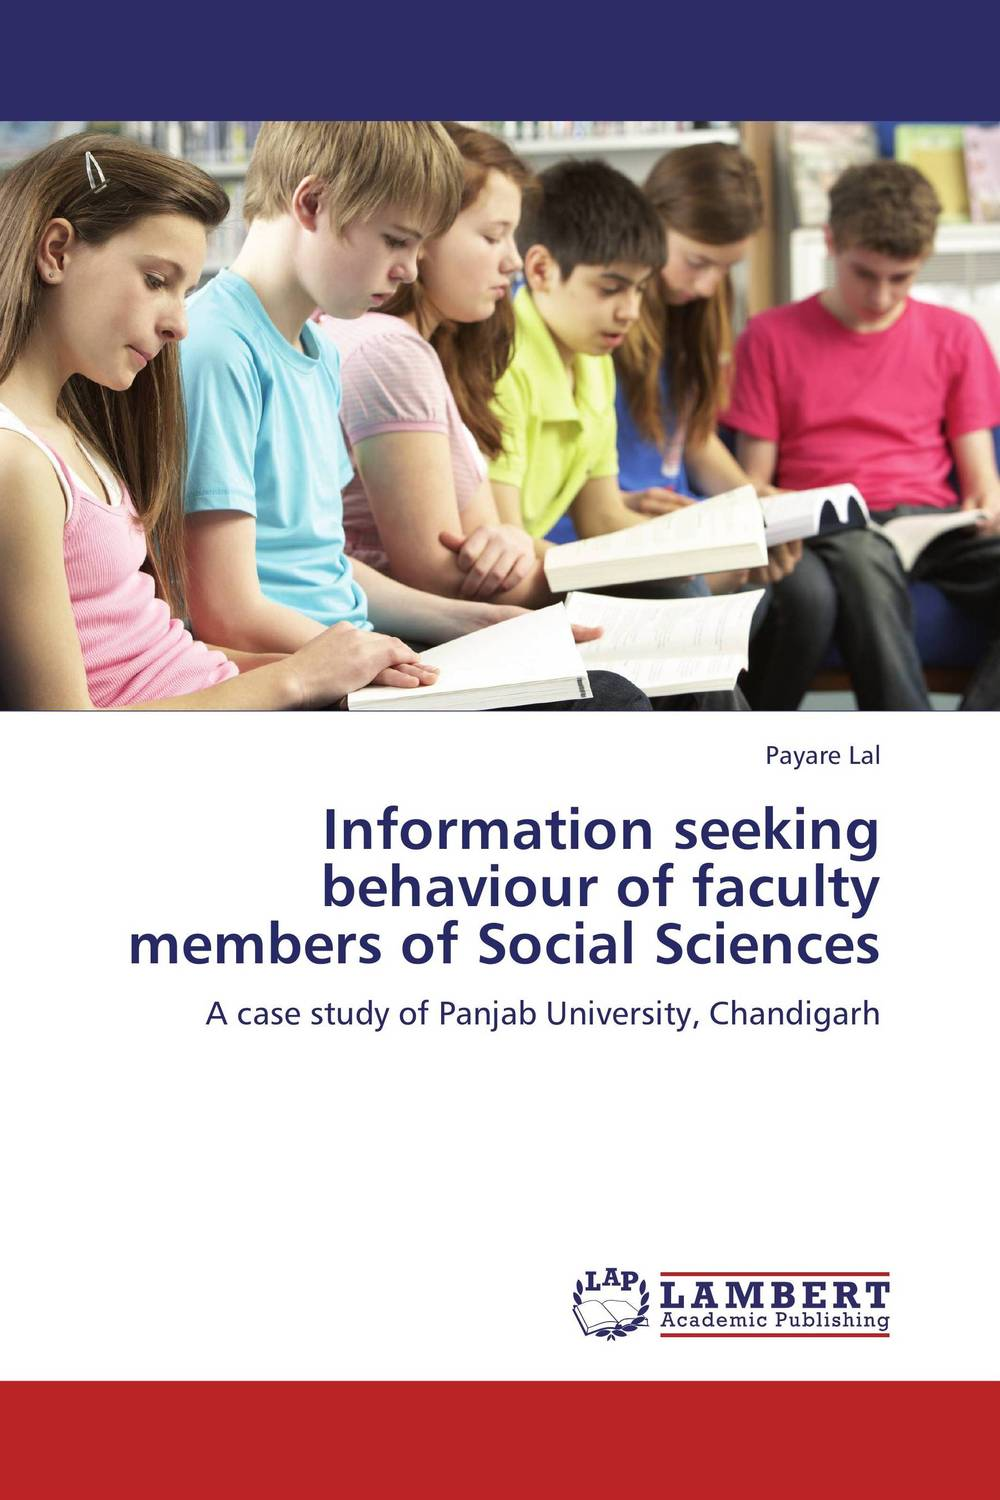 Information seeking behaviour of faculty members of Social Sciences fusion and revision of uncertain information from multiple sources